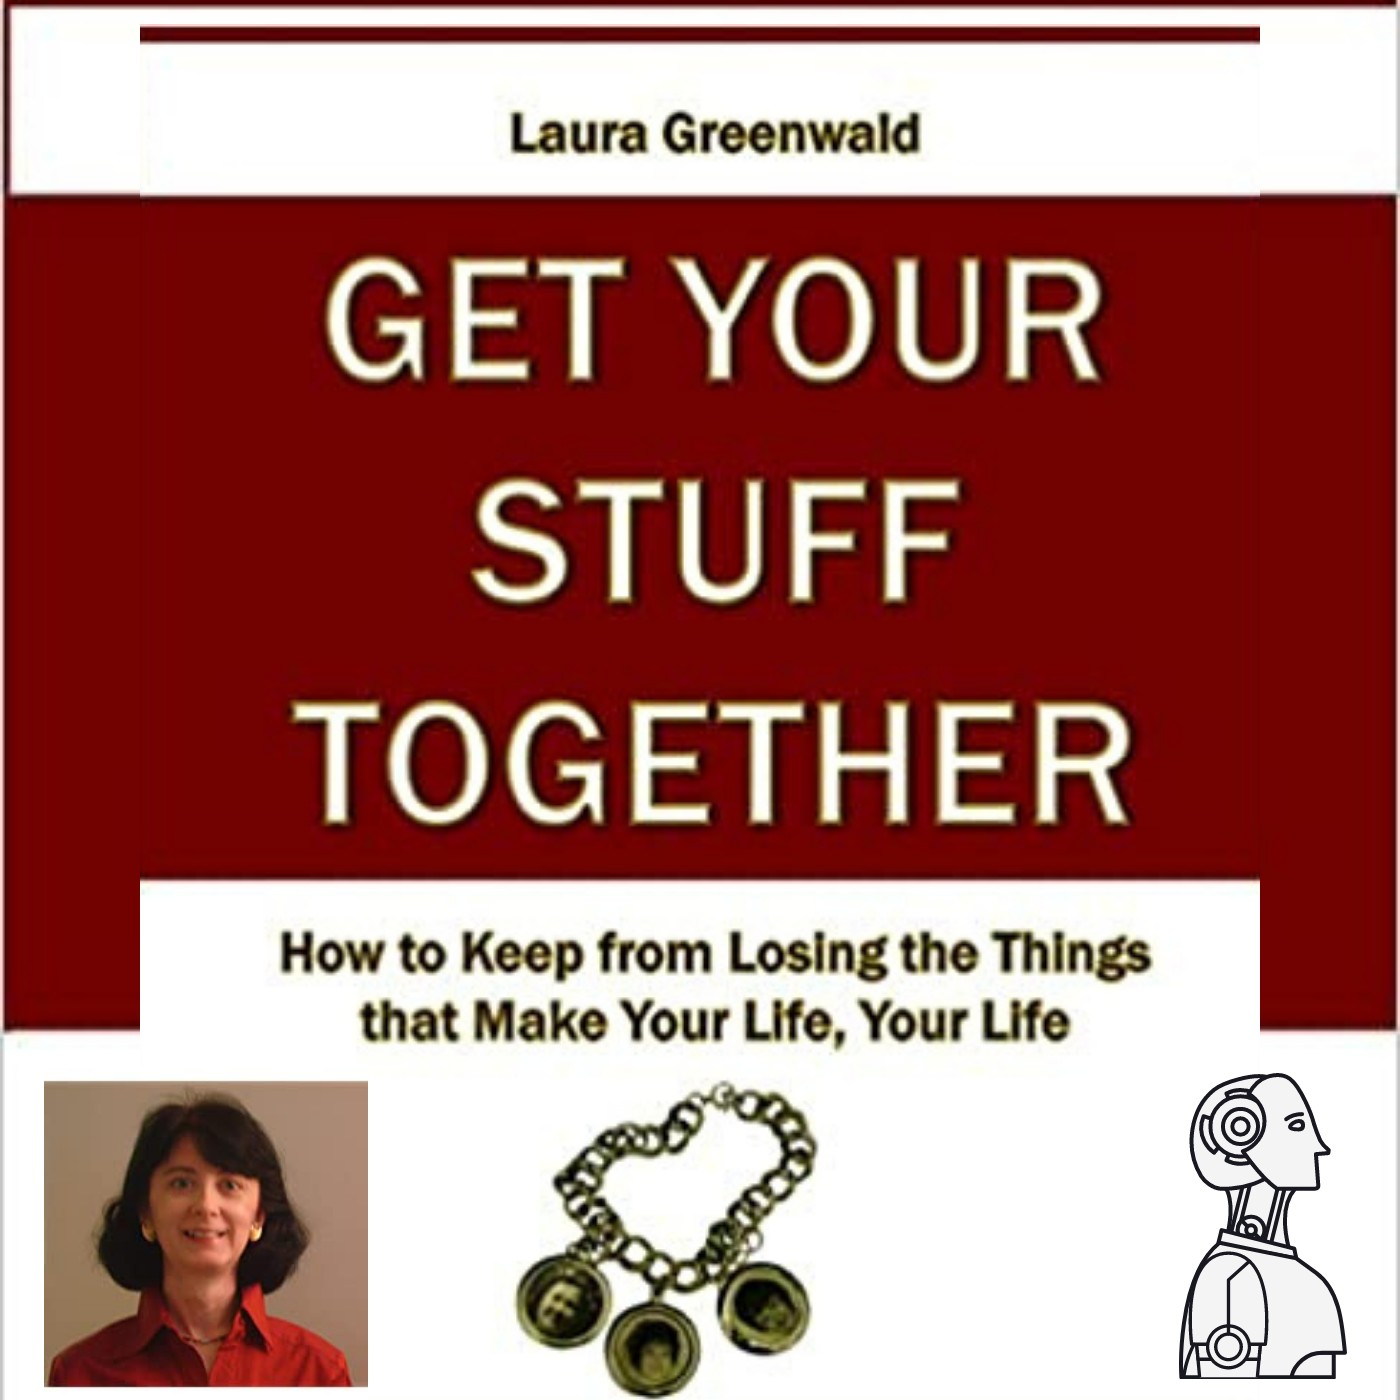 Top Tech Toys and Get Your Stuff Together - Advocacy, with Laura Greenwald